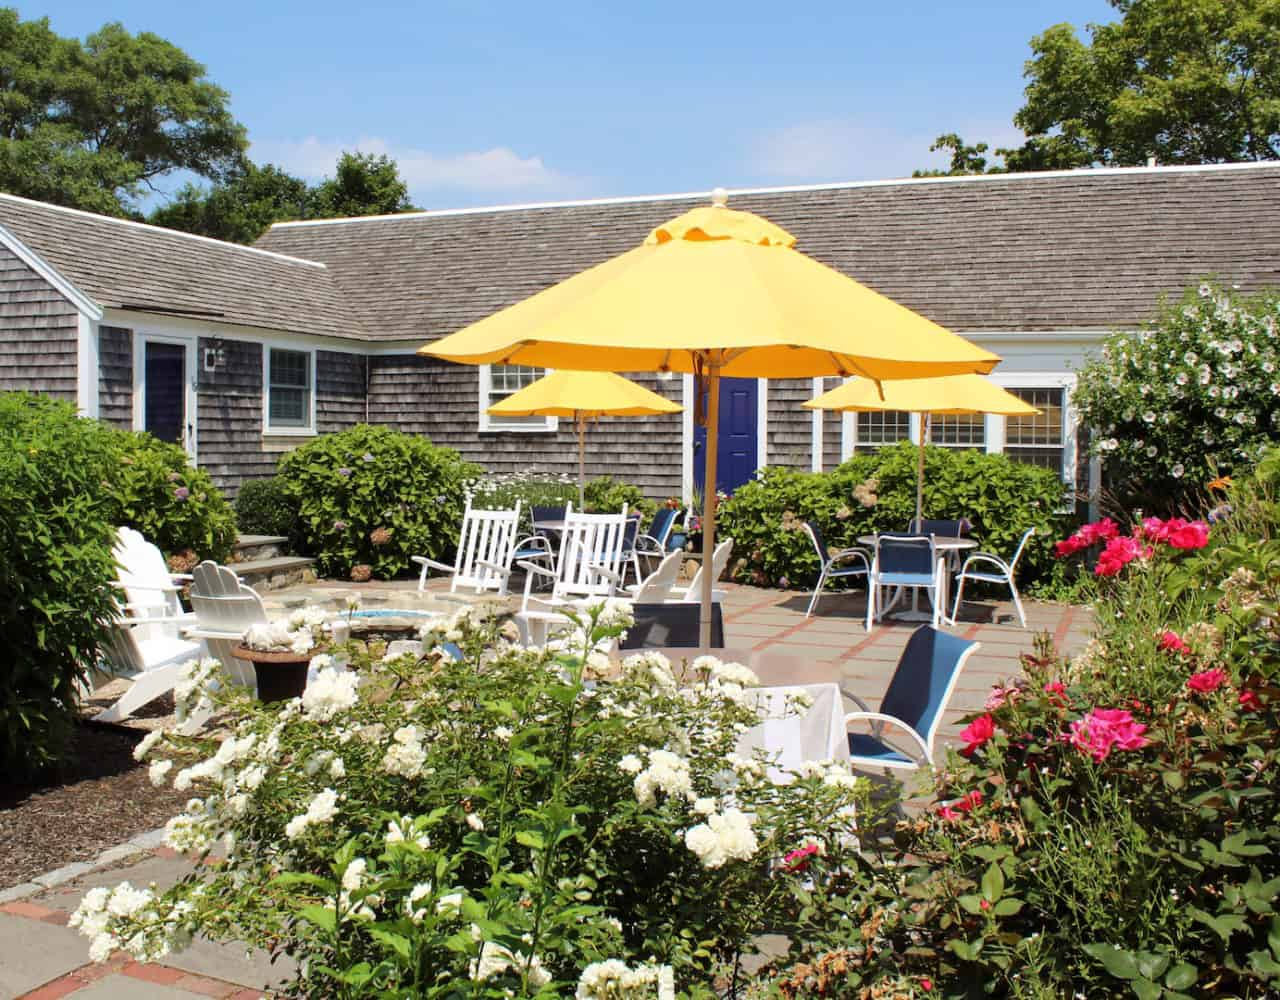 Colorful patio area with flowers and yellow umbrellas